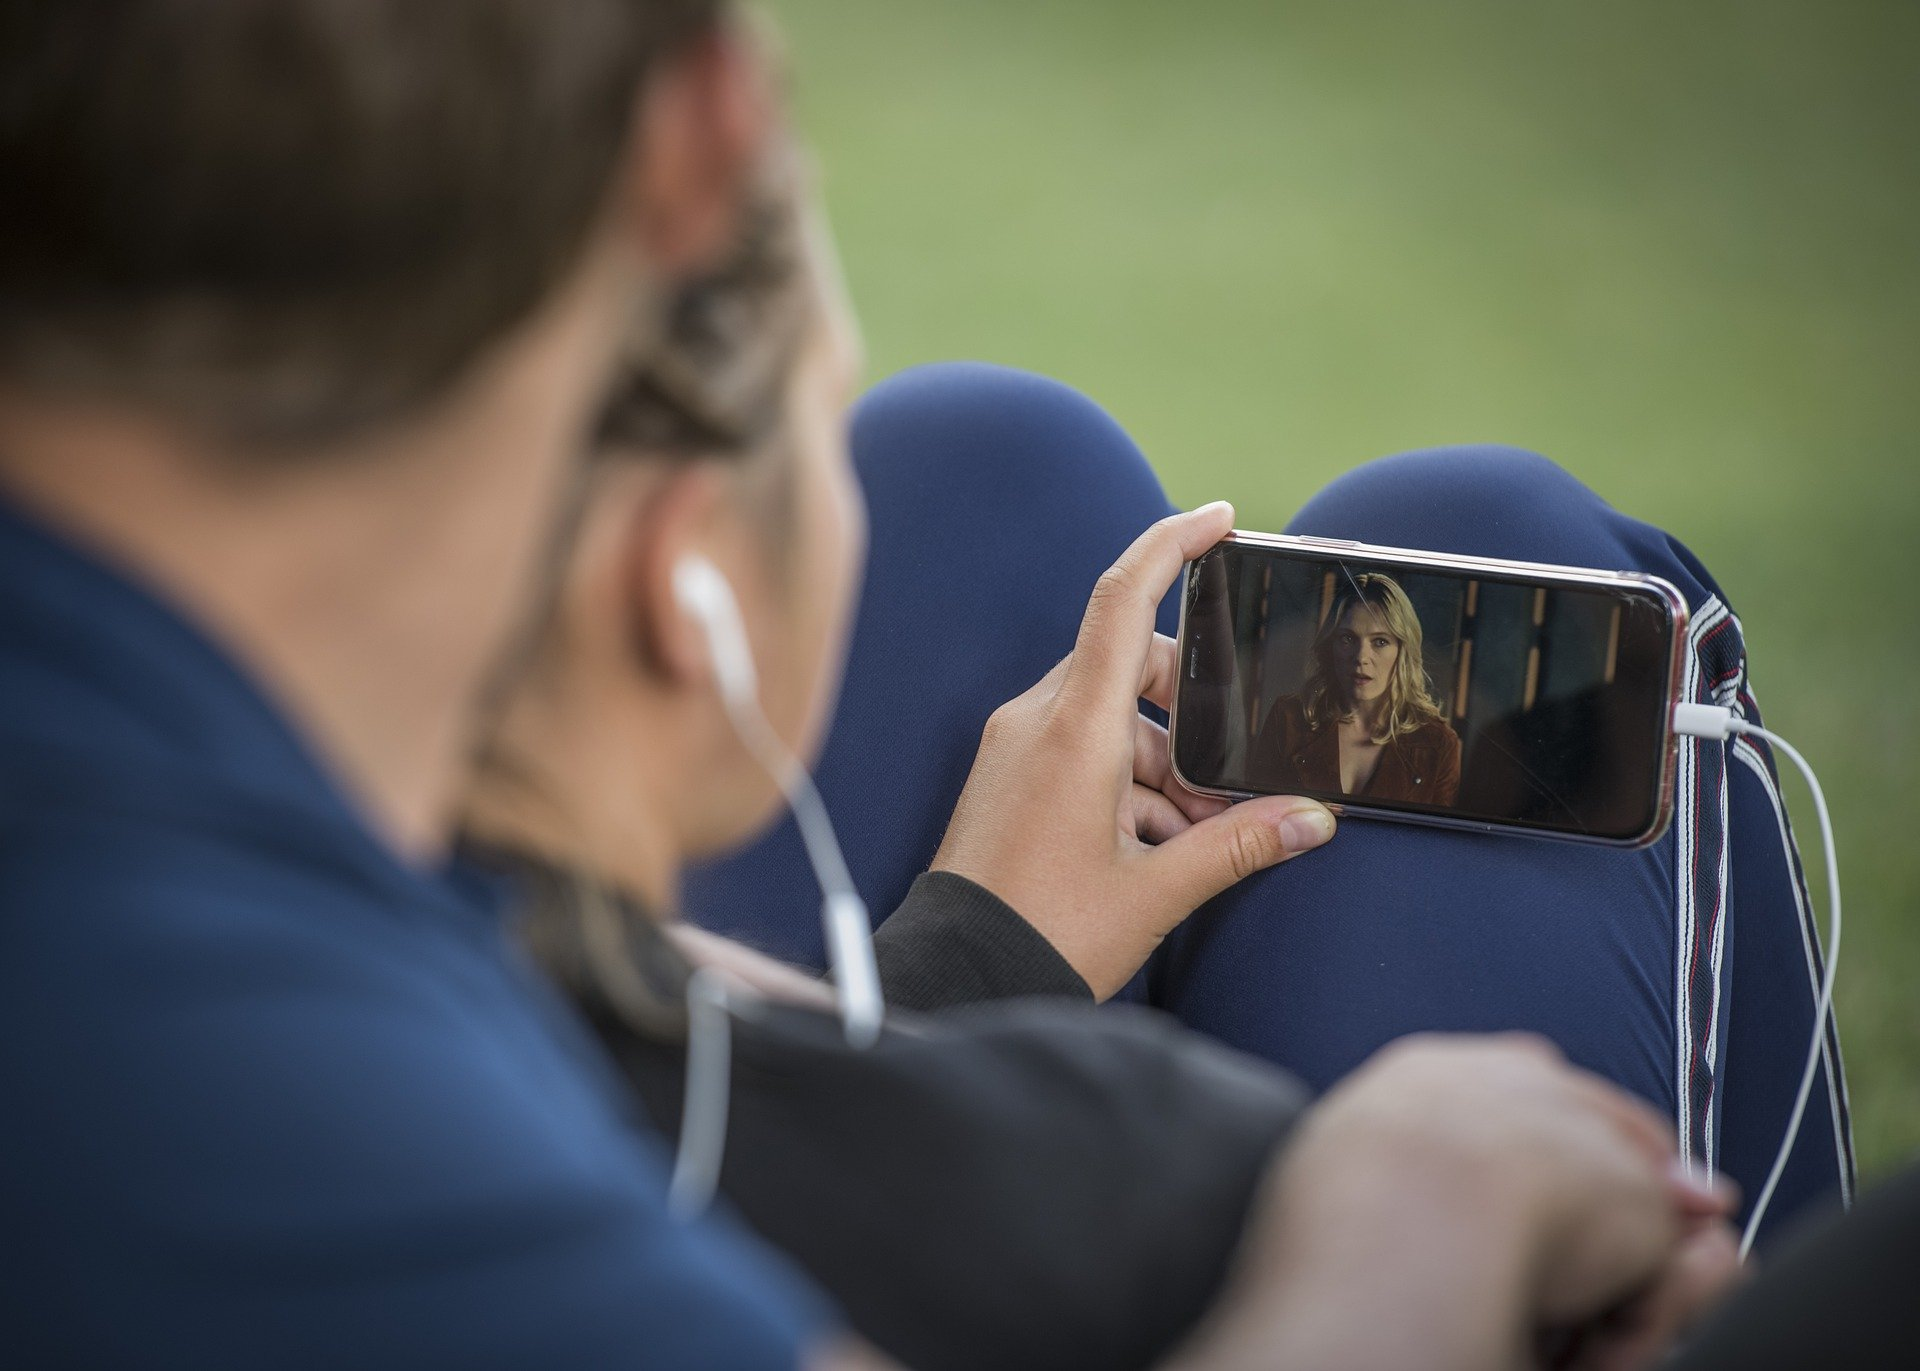 Using technology to strengthen your relationship